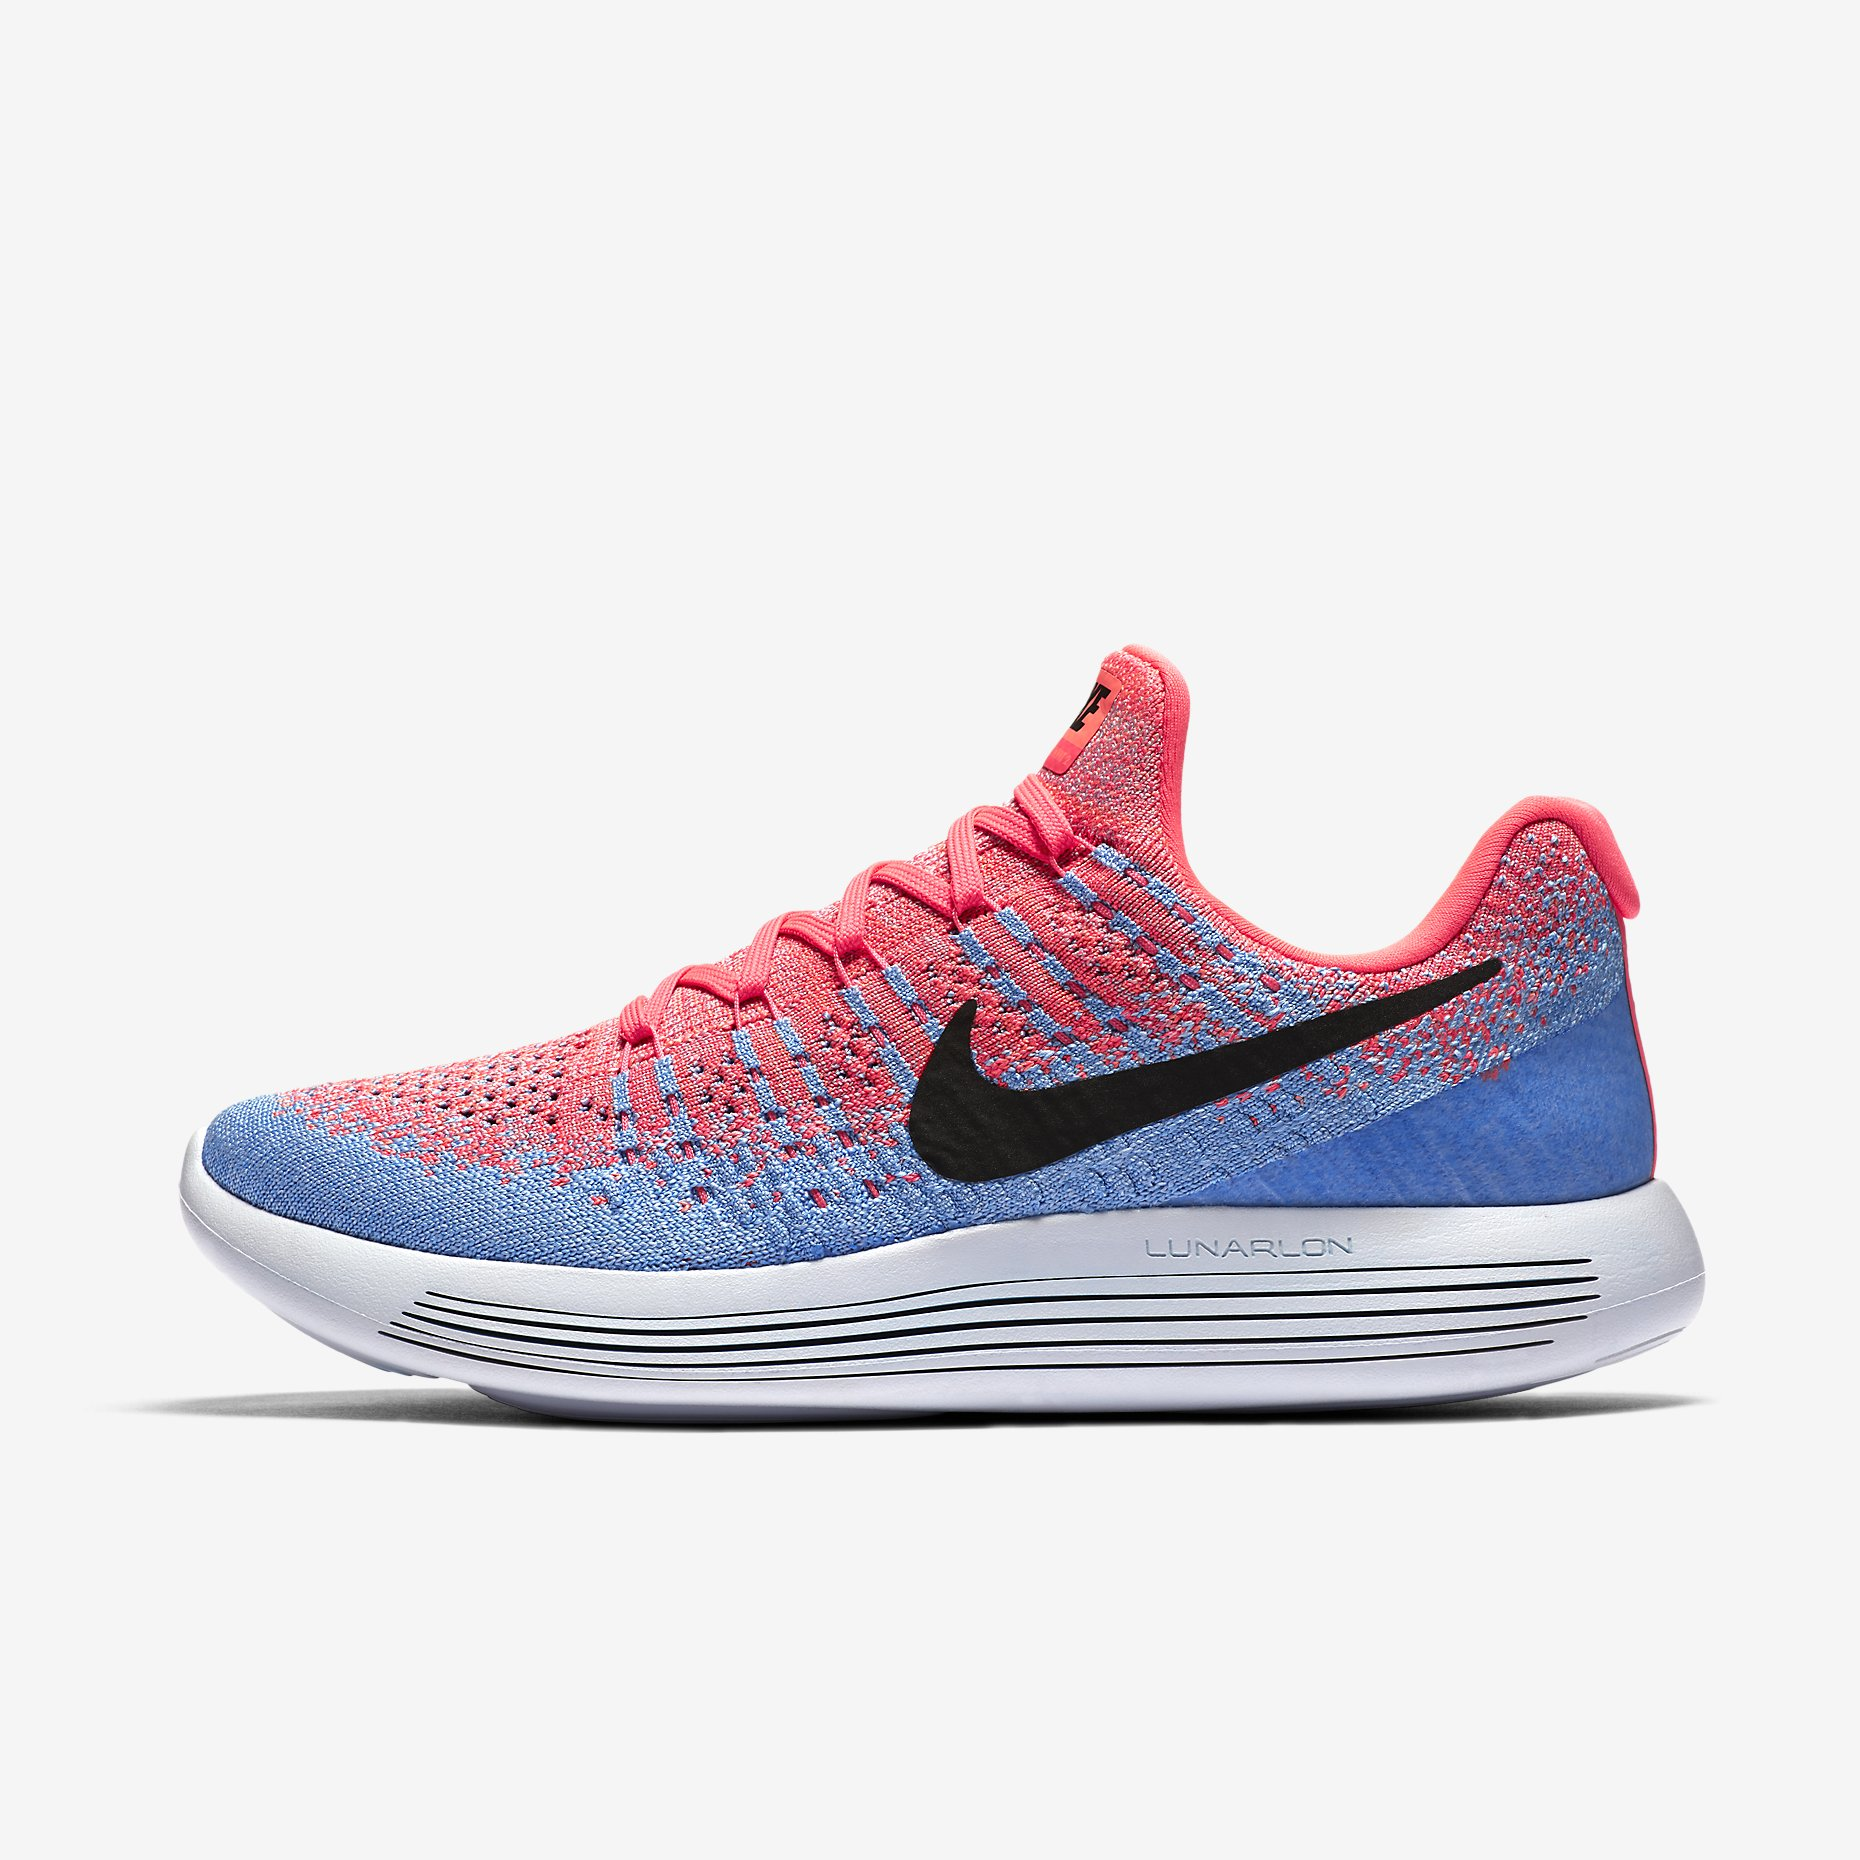 Nike LunarEpic Low Flyknit 2 Womens Running Shoes